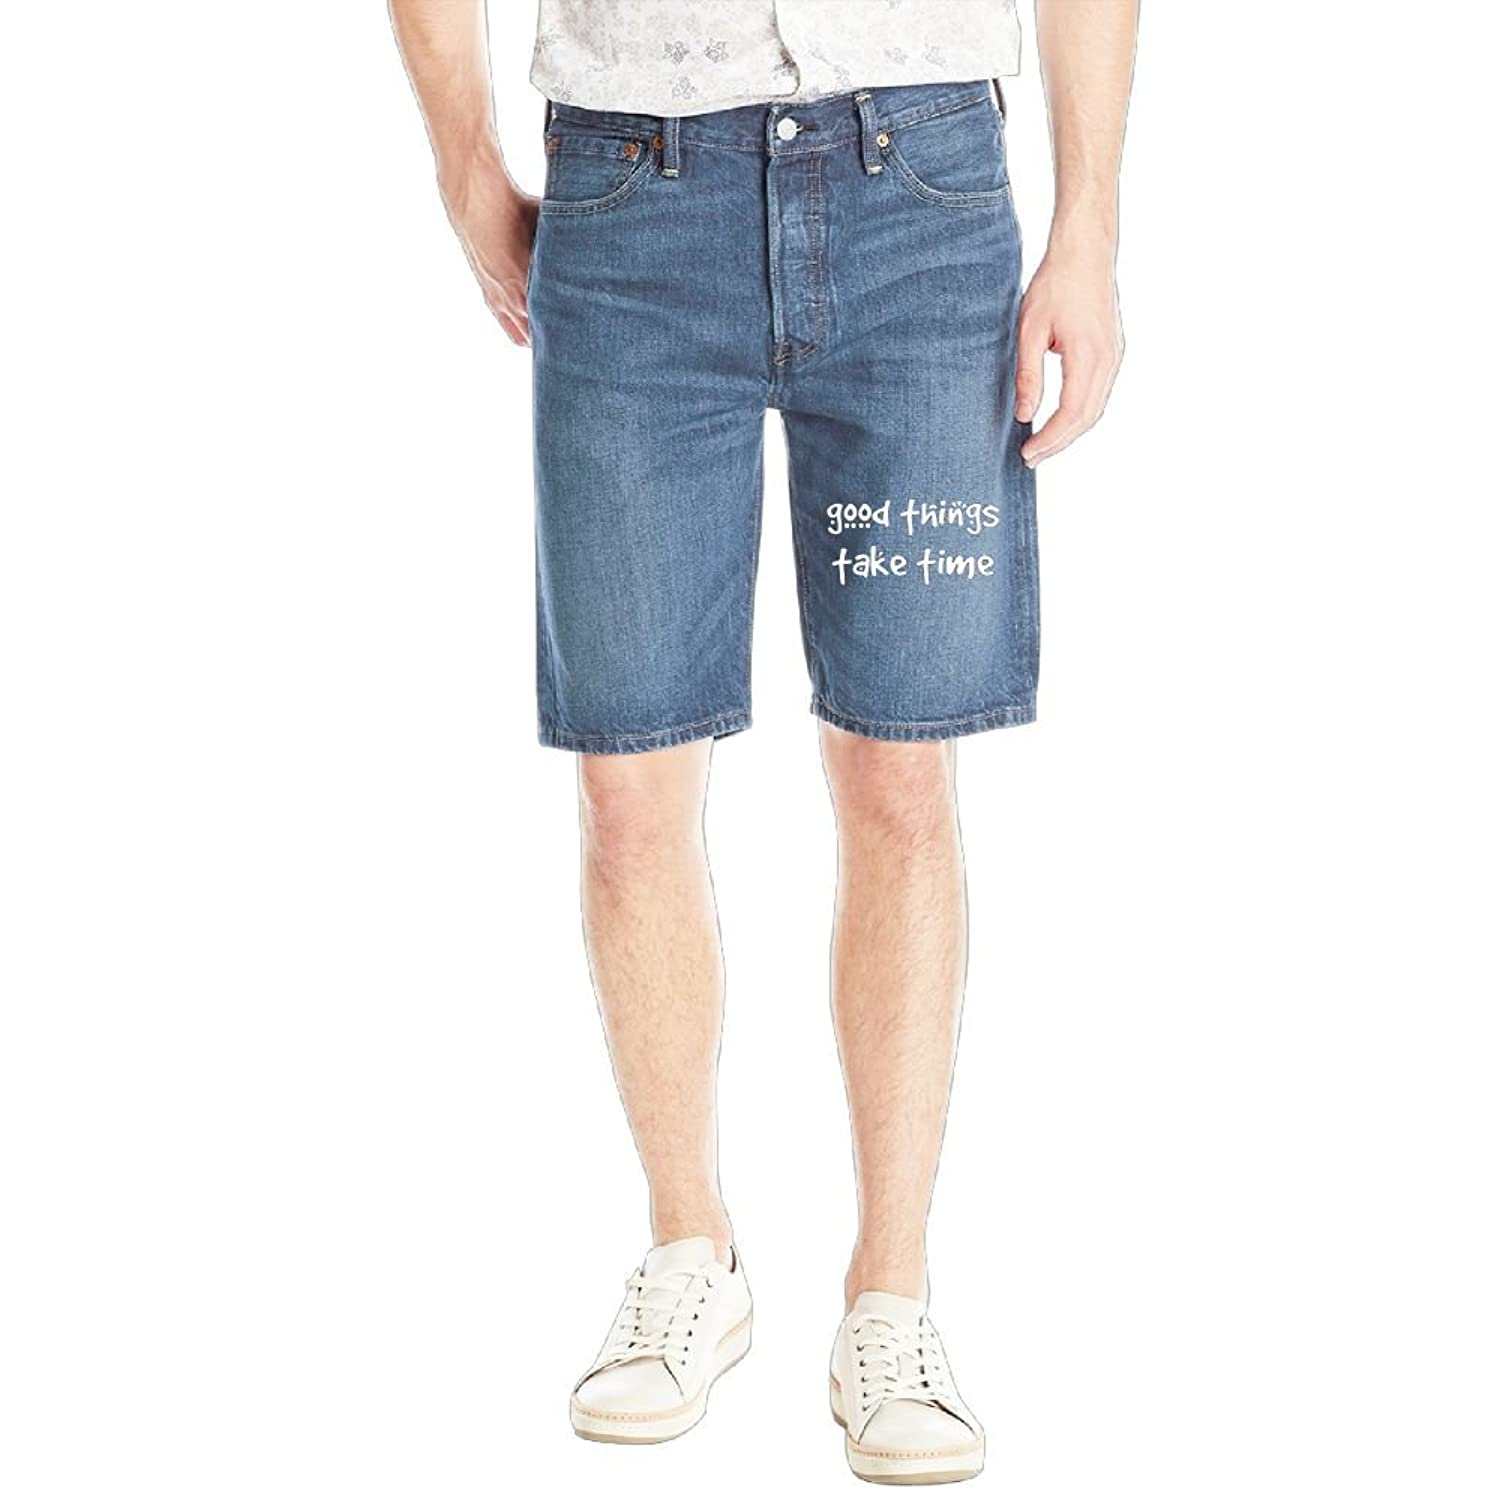 63e192ff938 on sale Good Things Take Time6 Mens Casual Short Denim Jean Pants Cool  Casual Jeans Trousers